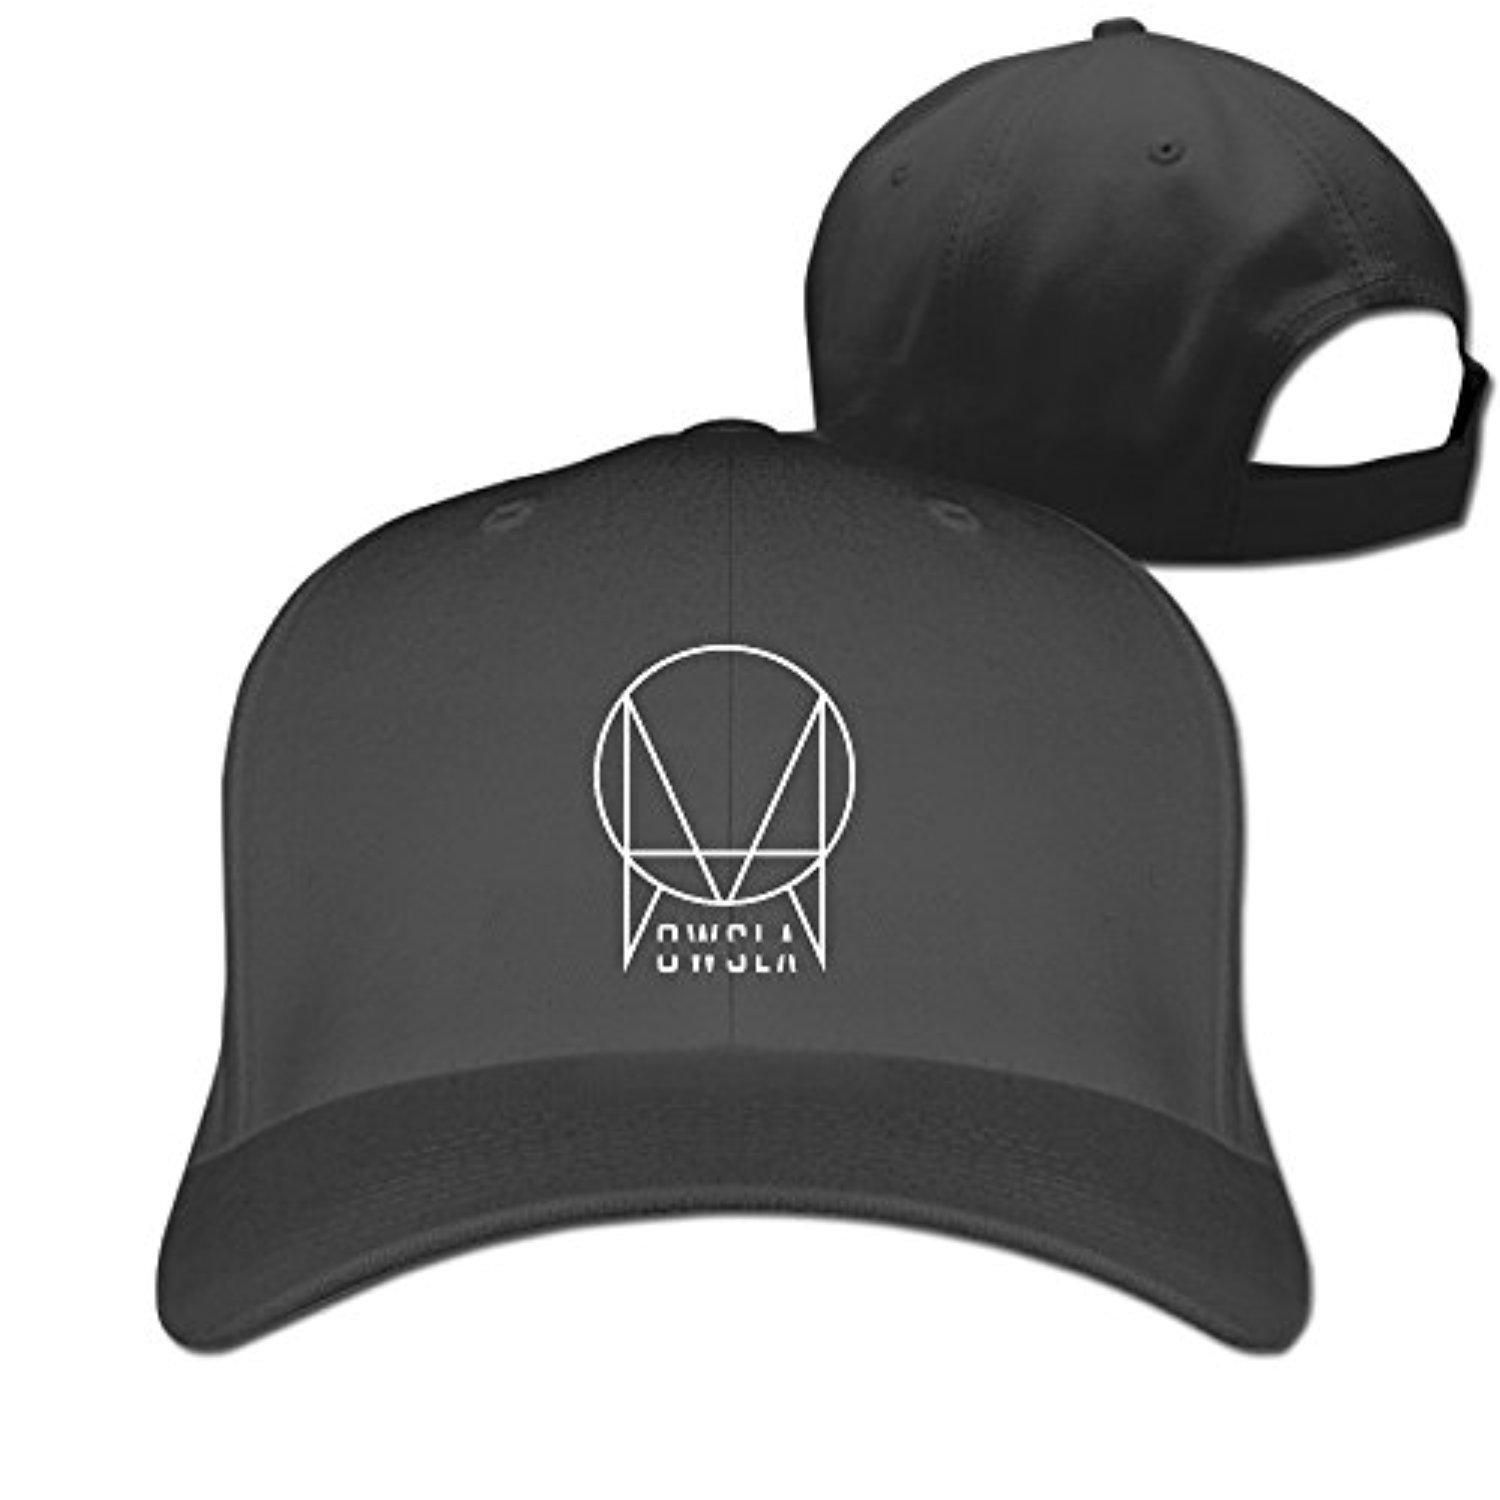 f6b0e646adbf8 Brought to you by Avarsha.com   div  div Classic Adjustable Cotton Skrillex  Owsla Logo Baseball Cap Snapback Hat.  div  ul  li 100% Cotton Unisex  Baseball ...